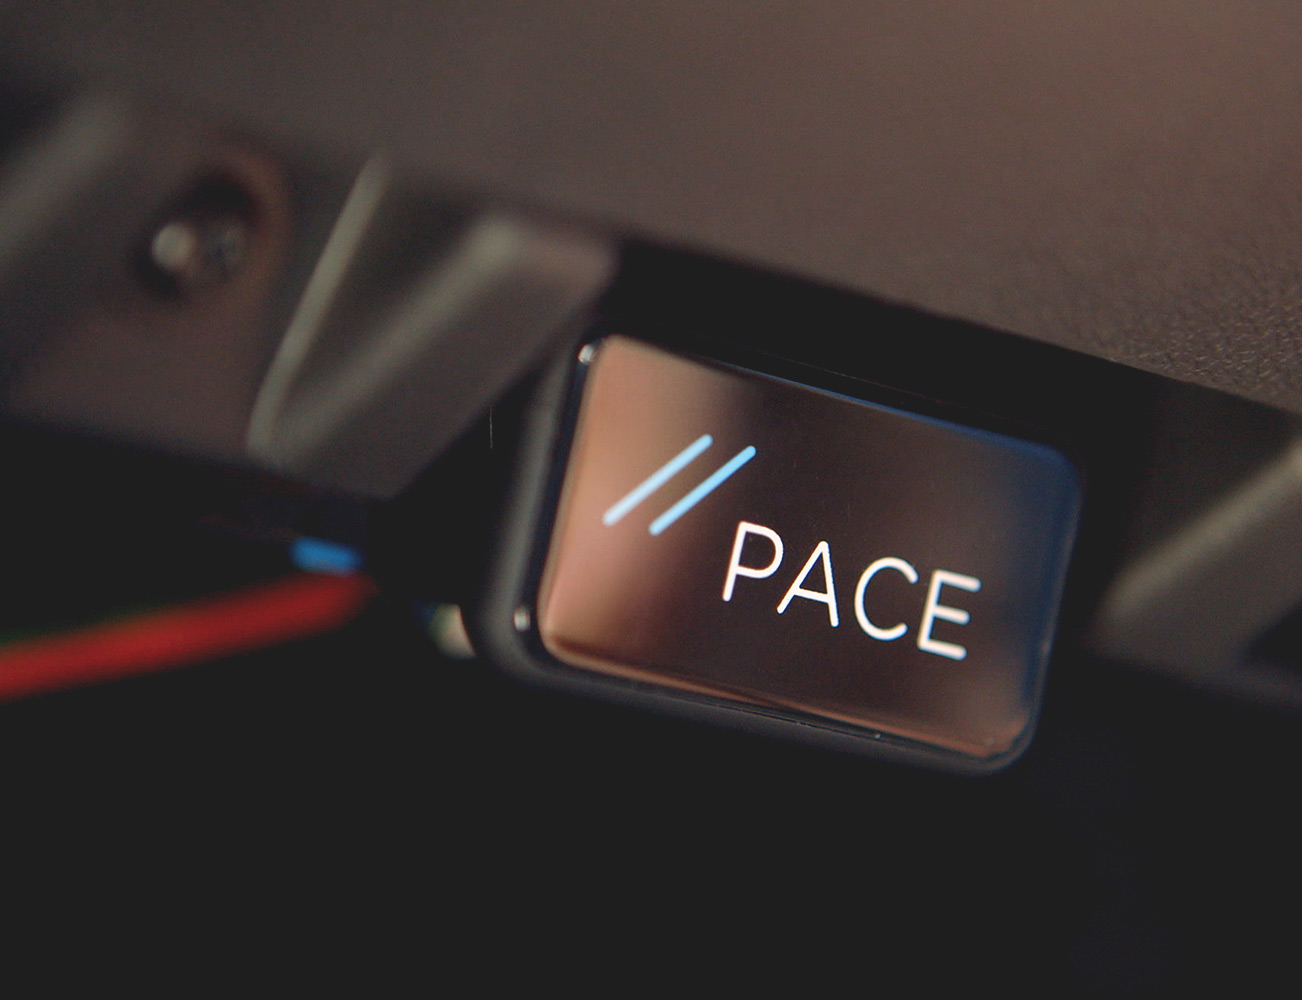 pace-link-turn-your-car-into-a-smartcar-04